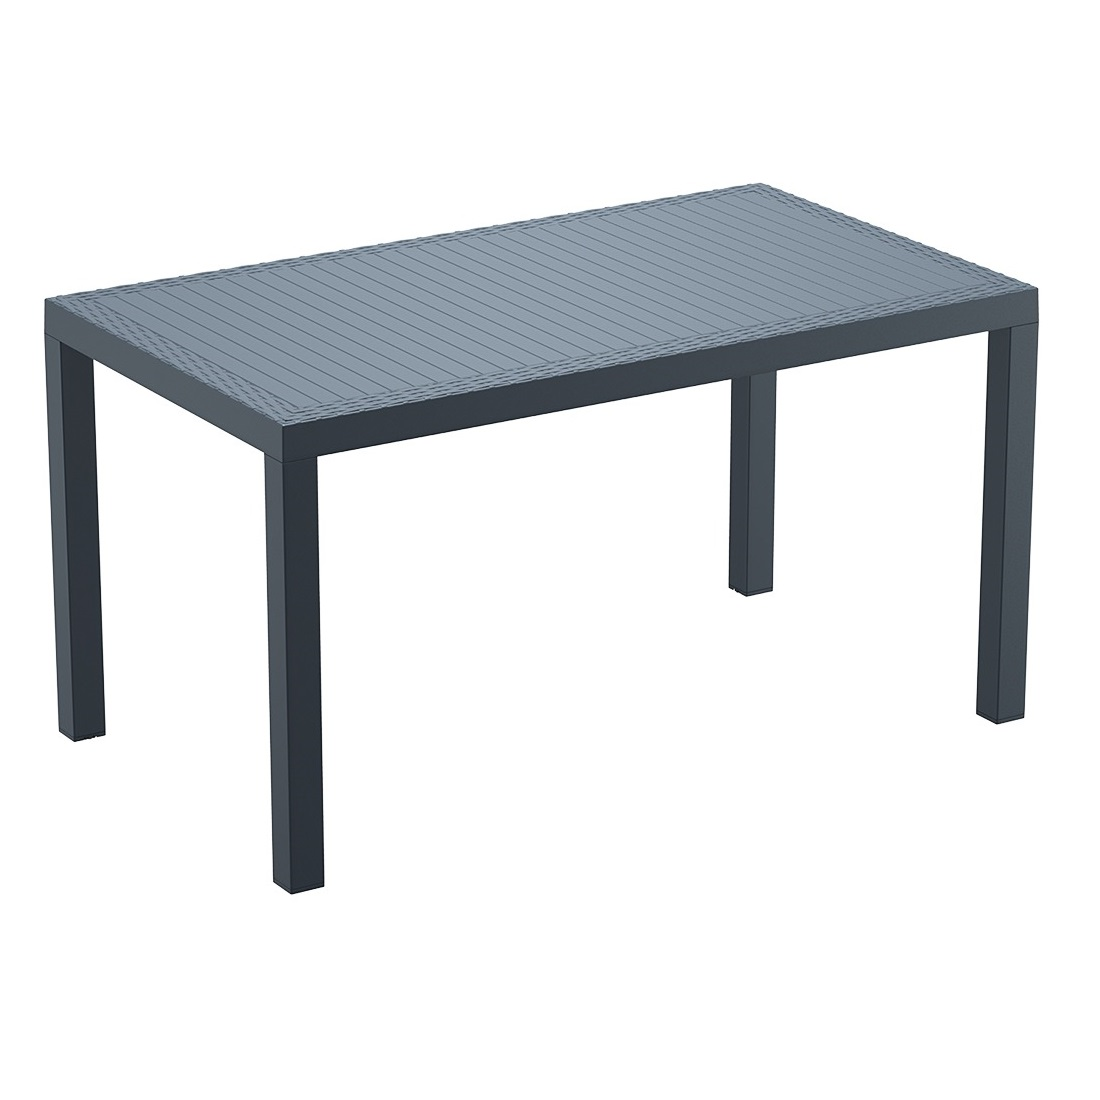 Orlando Table 1400 X 800 Anthracite